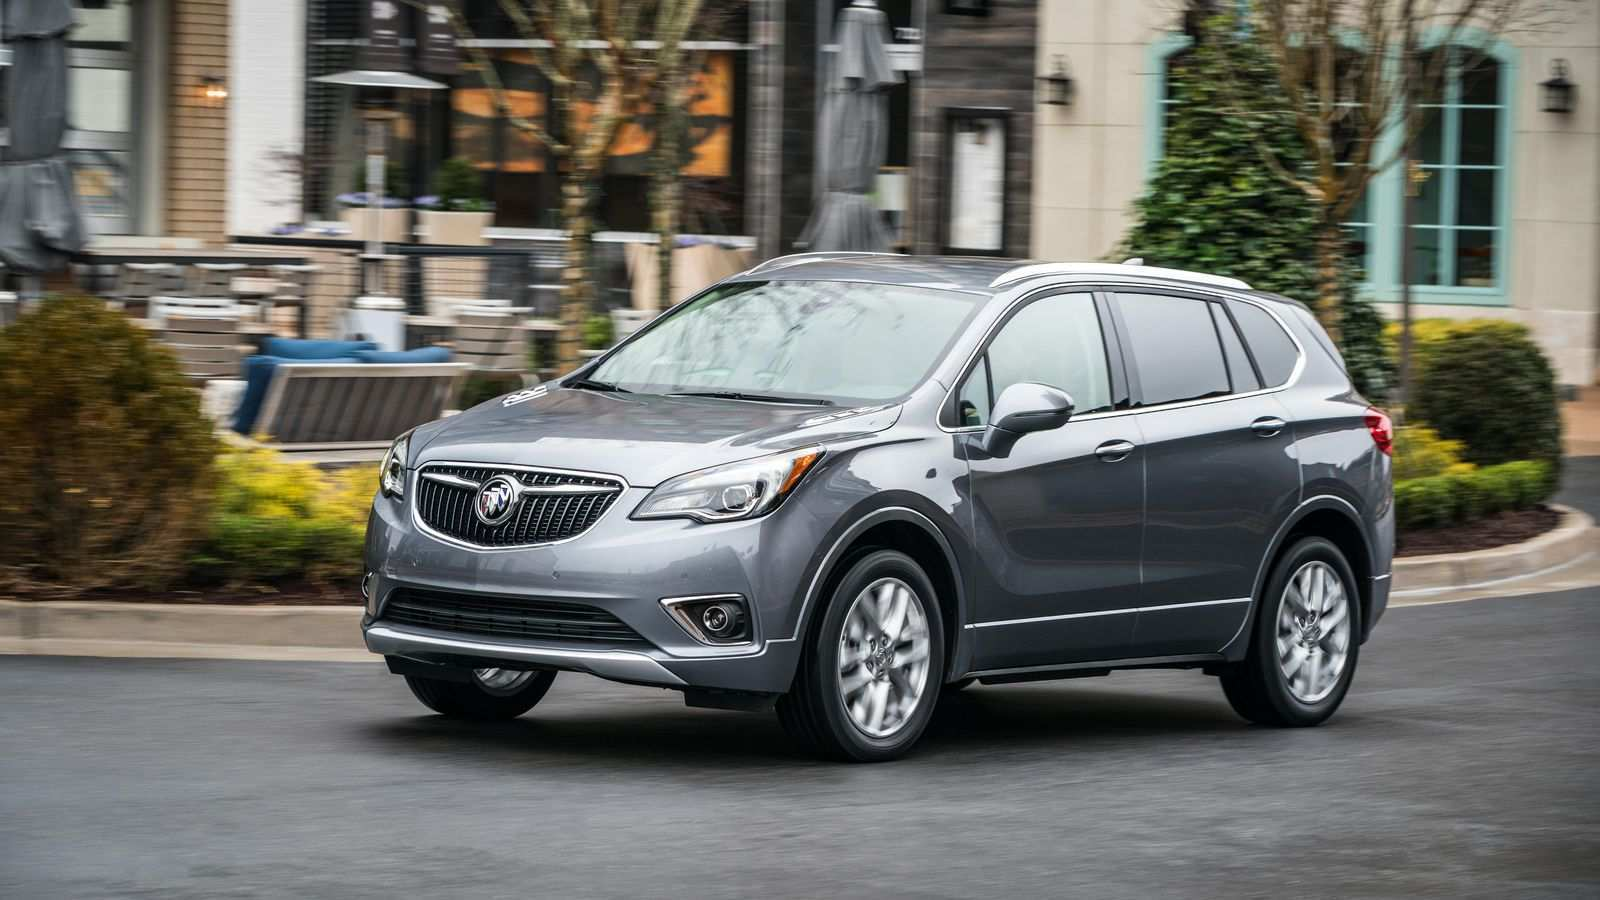 59 Concept of 2019 Buick Envision Overview for 2019 Buick Envision